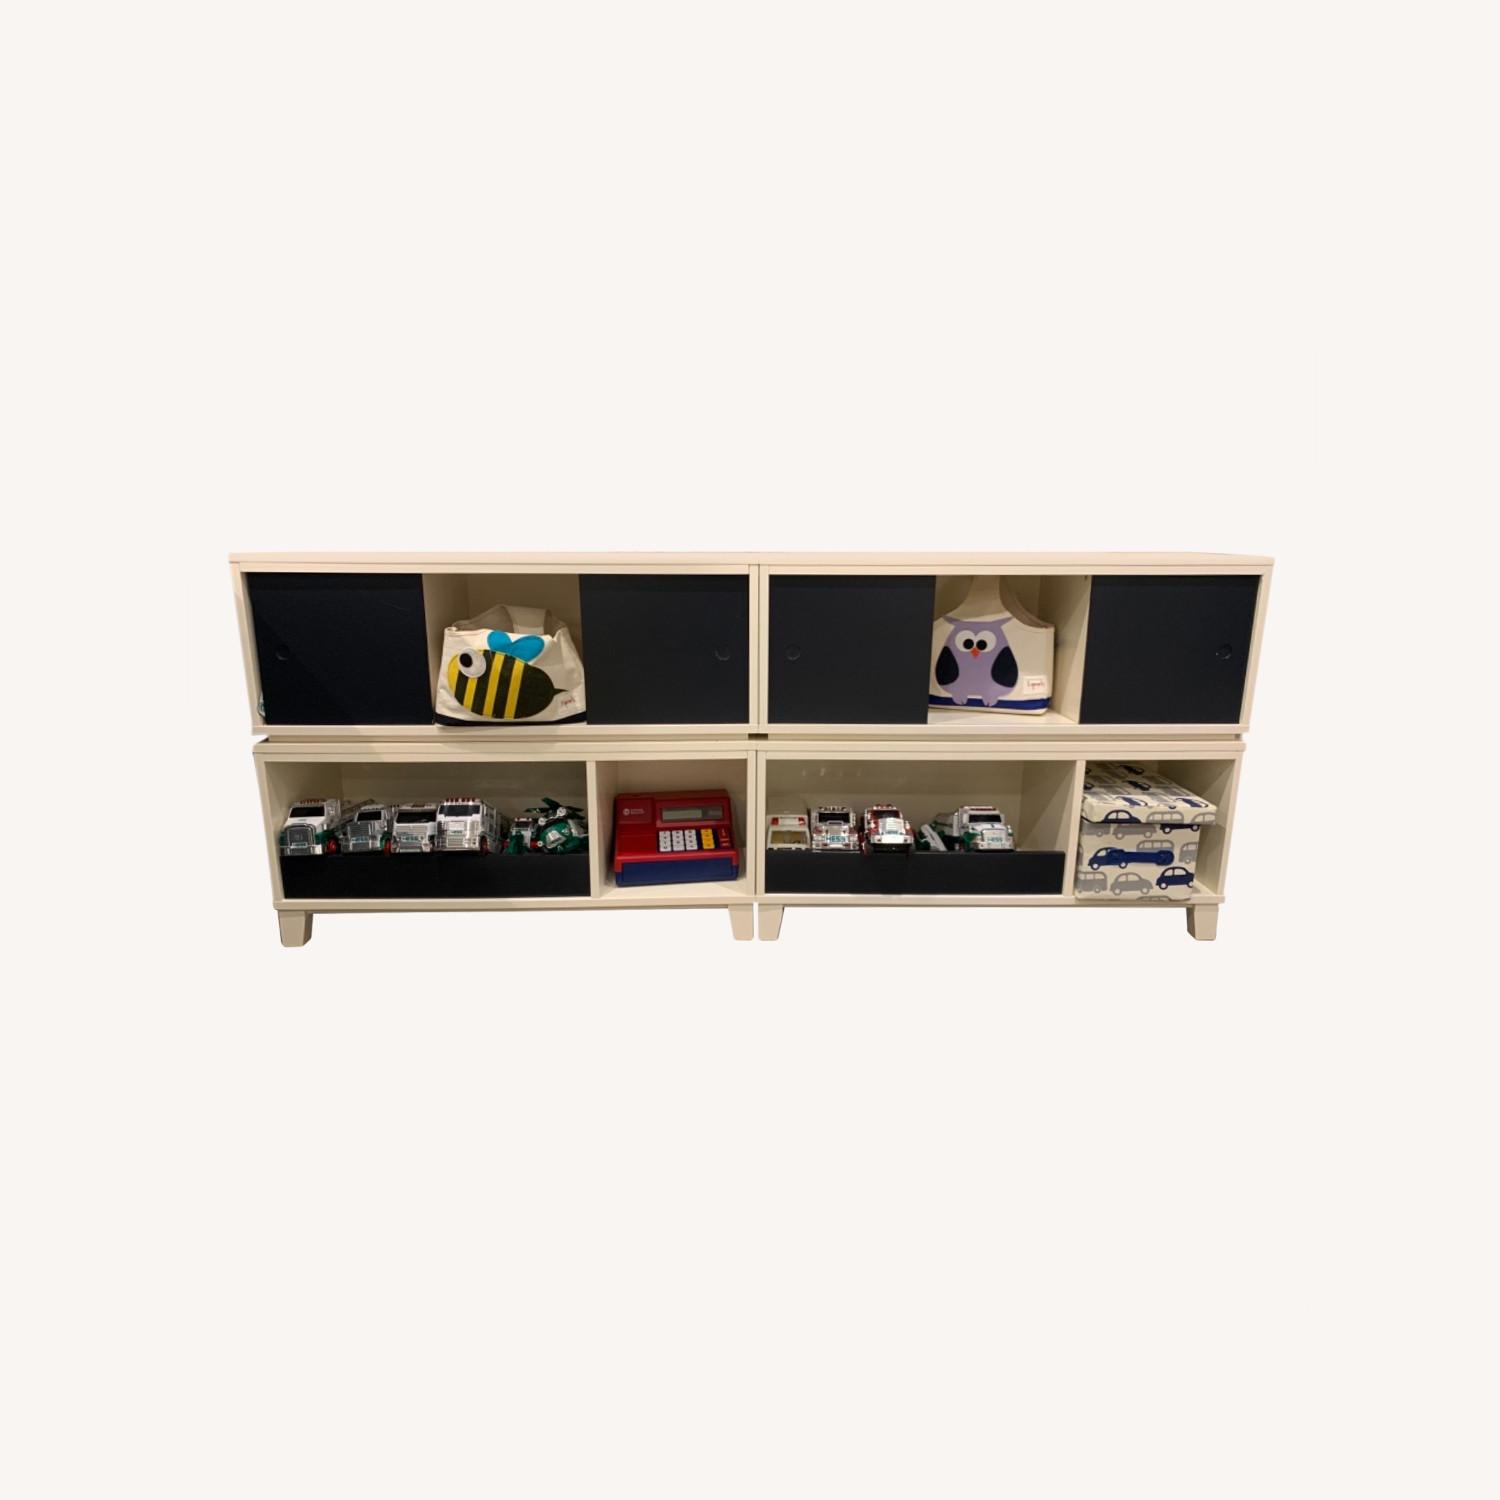 Crate and Barrel District Stackable Bookshelf - image-0